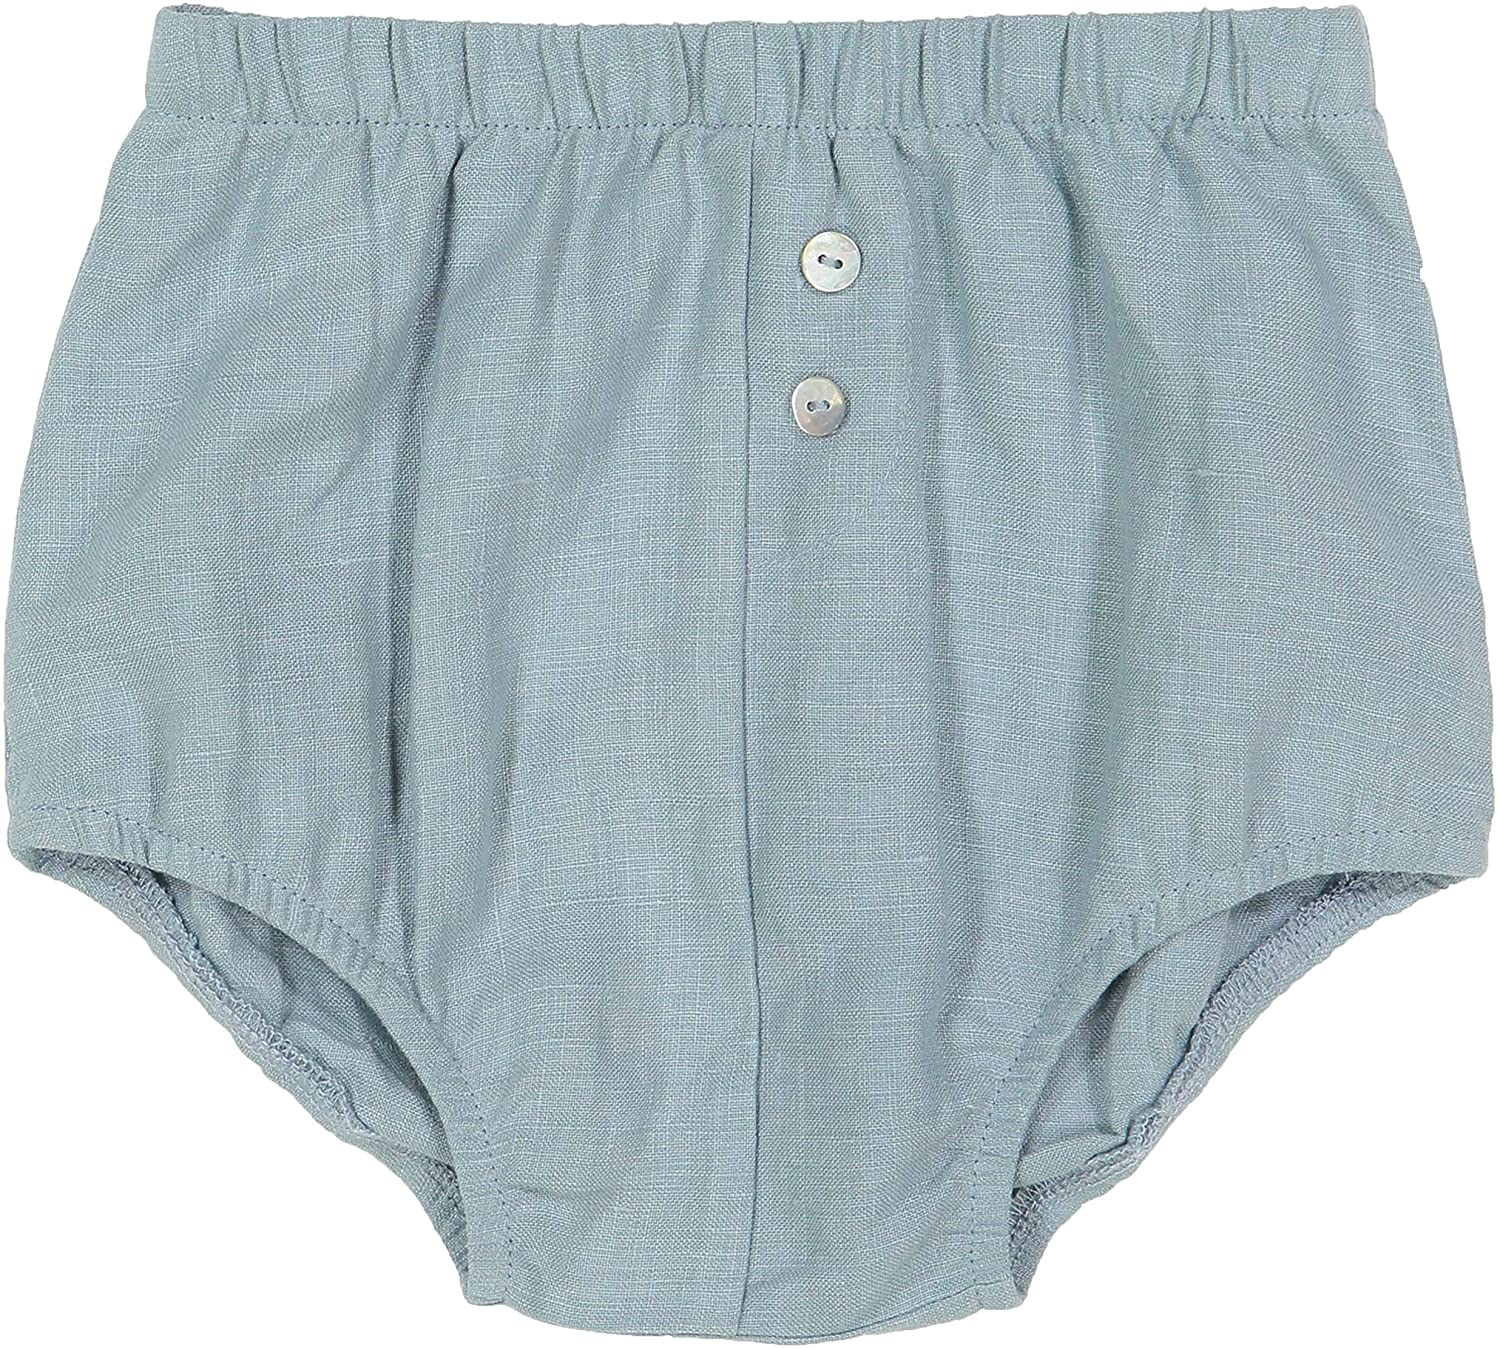 Analogie by Lil Legs Boys Girls Unisex Baby//Toddler Linen Bloomers